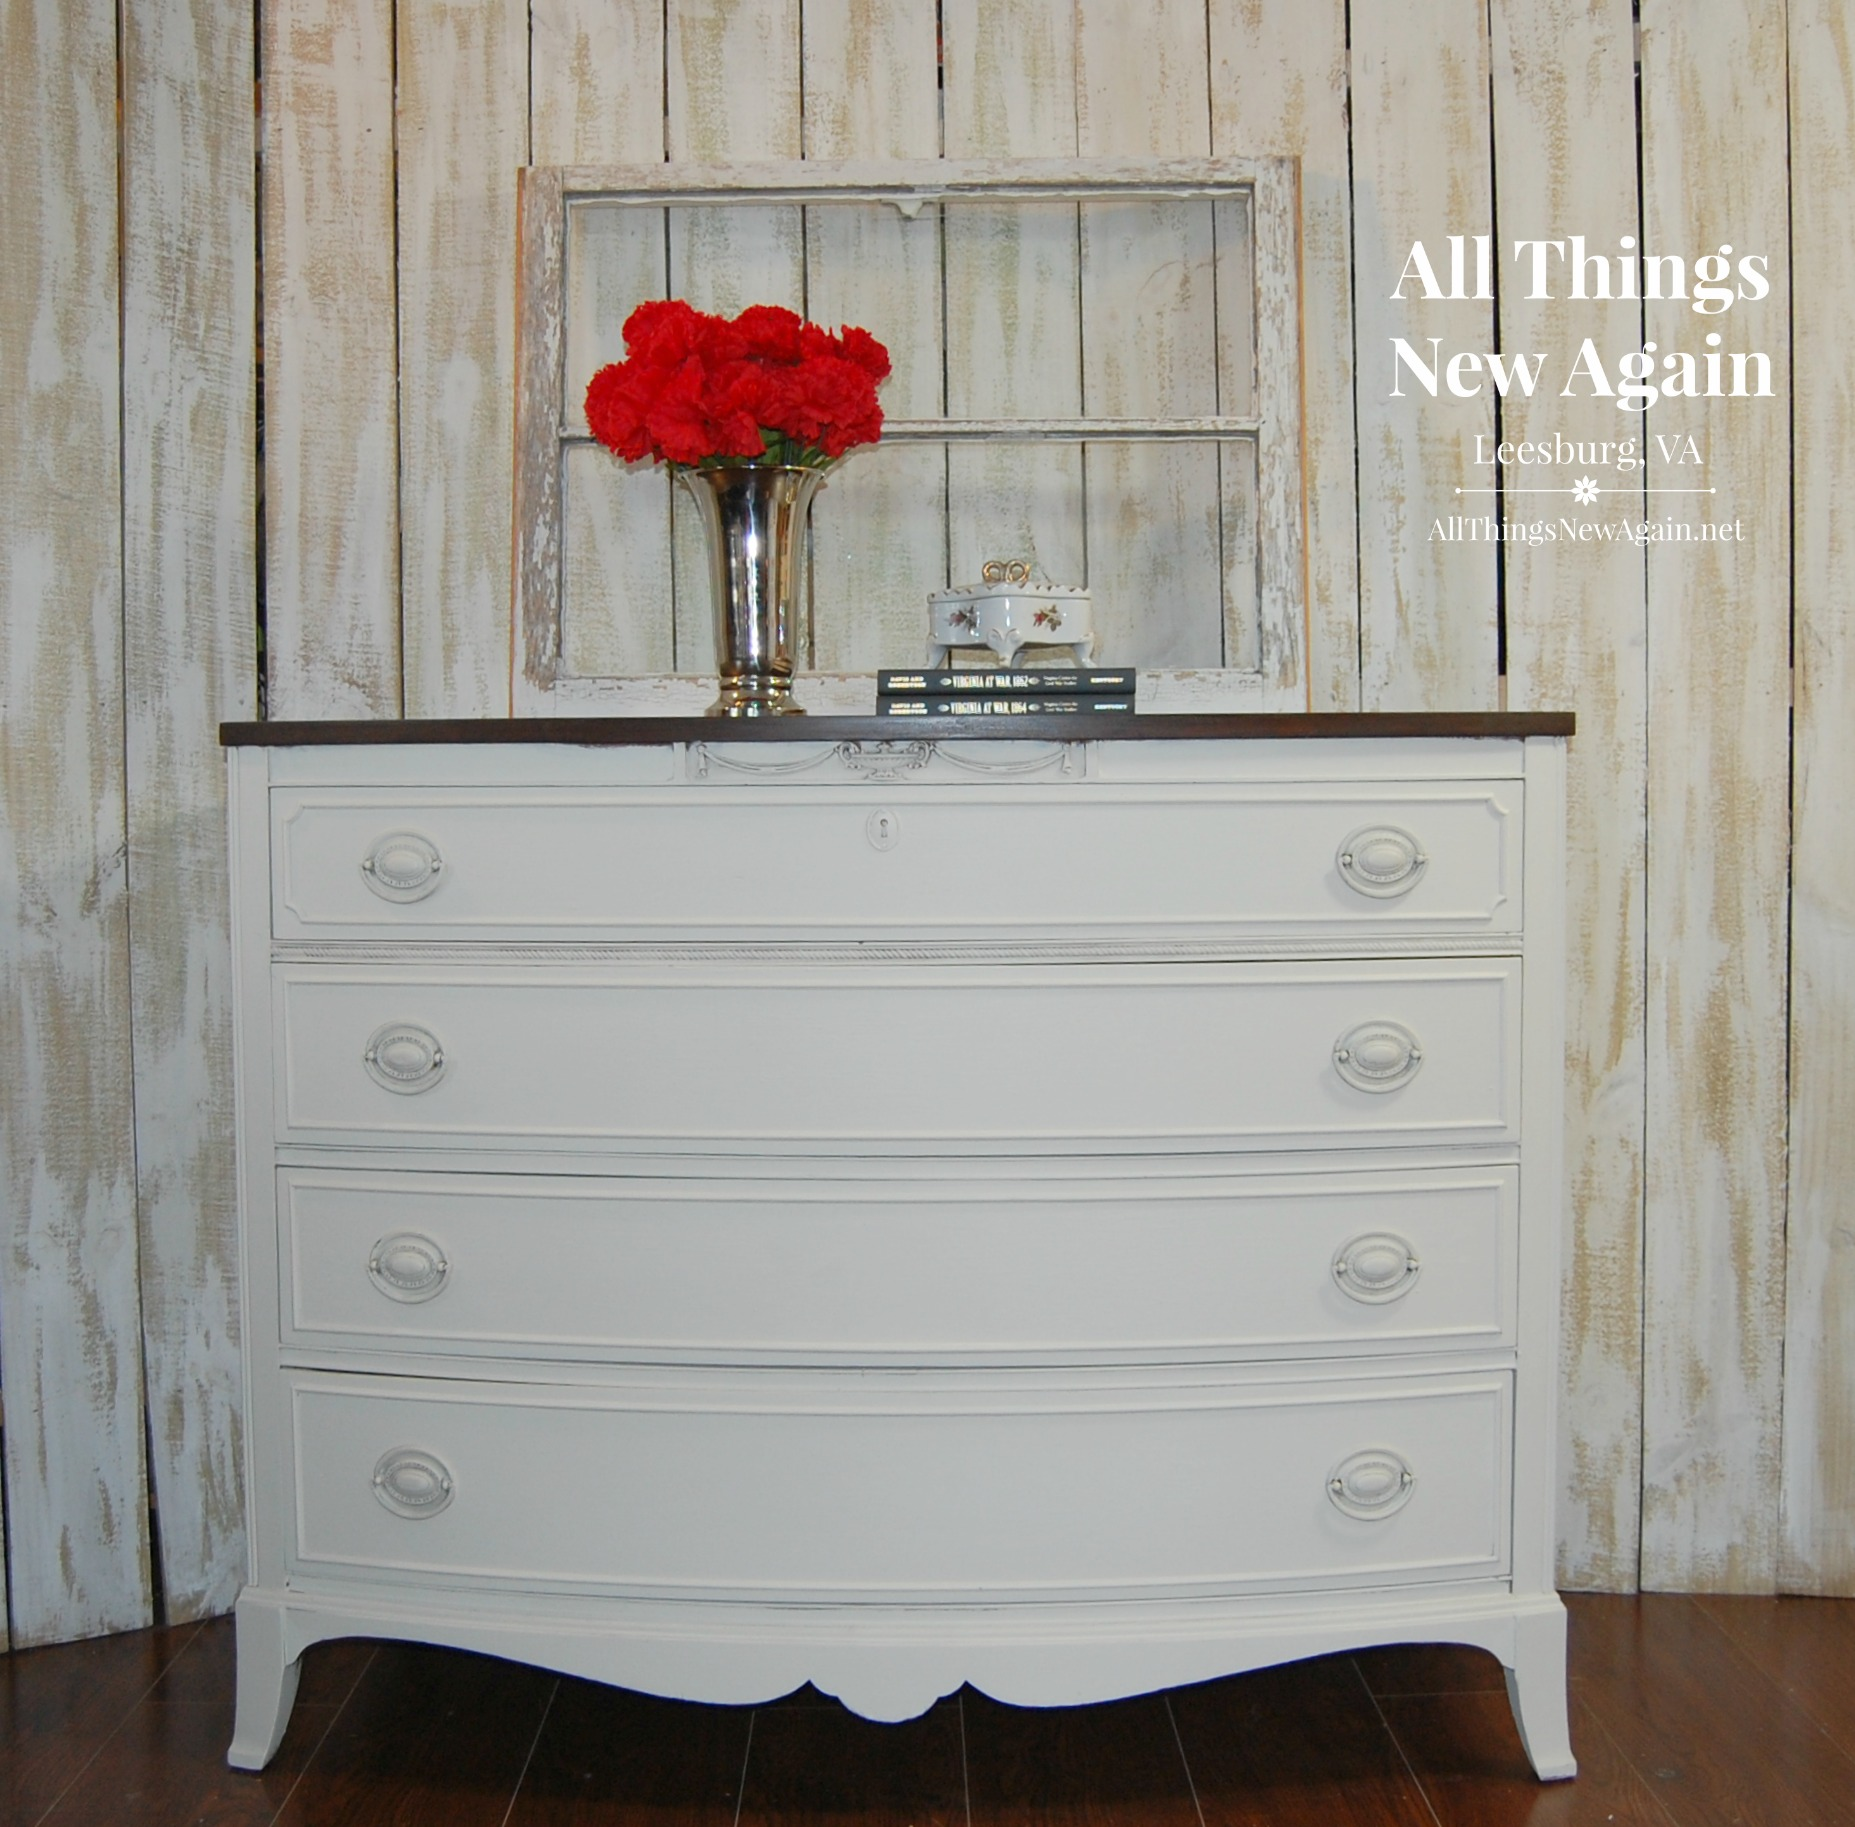 Dixie Belle Paint Company | Chalk And Mineral Paint | Dropcloth | DIY Painted  Furniture Makeovers